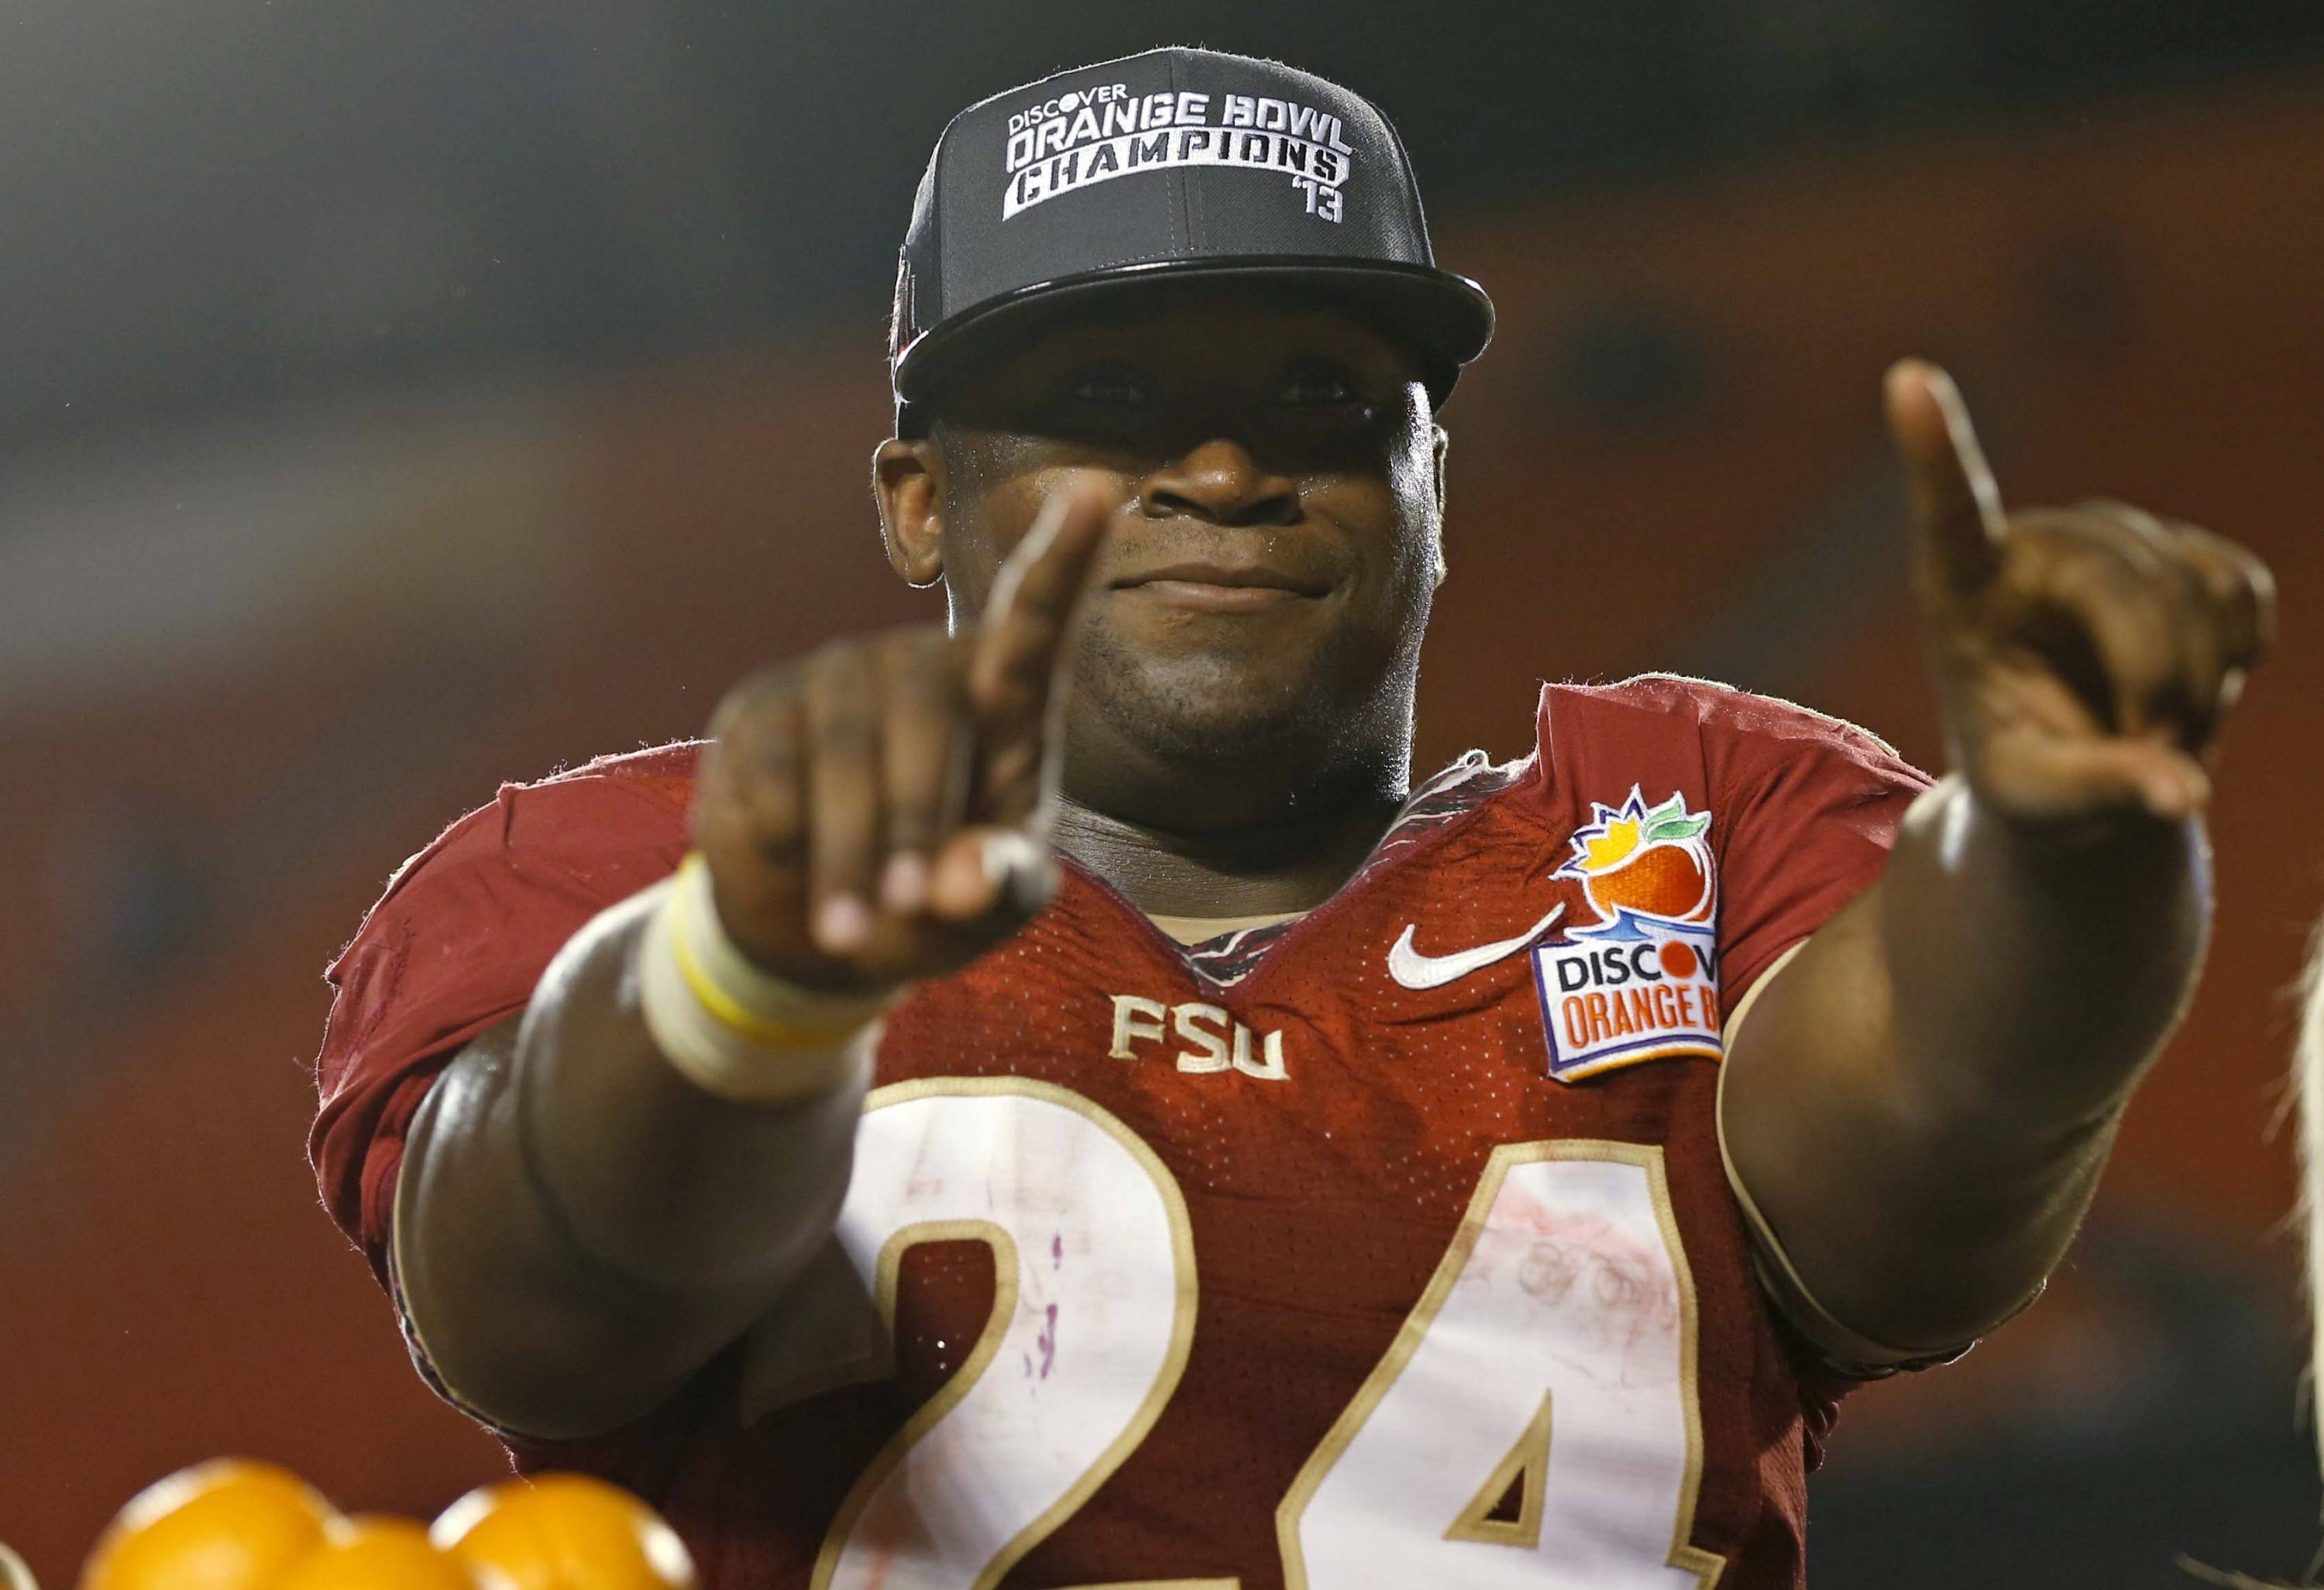 Florida State Seminoles fullback Lonnie Pryor (24), voted the game's outstanding player during the Orange Bowl NCAA college football game against Northern Illinois, early Wednesday, Jan. 2, 2013, in Miami. Pryor ran a career-high 134 yards and two touchdowns. Florida State defeated  Northern  illinois 31-10.(AP Photo/J Pat Carter)